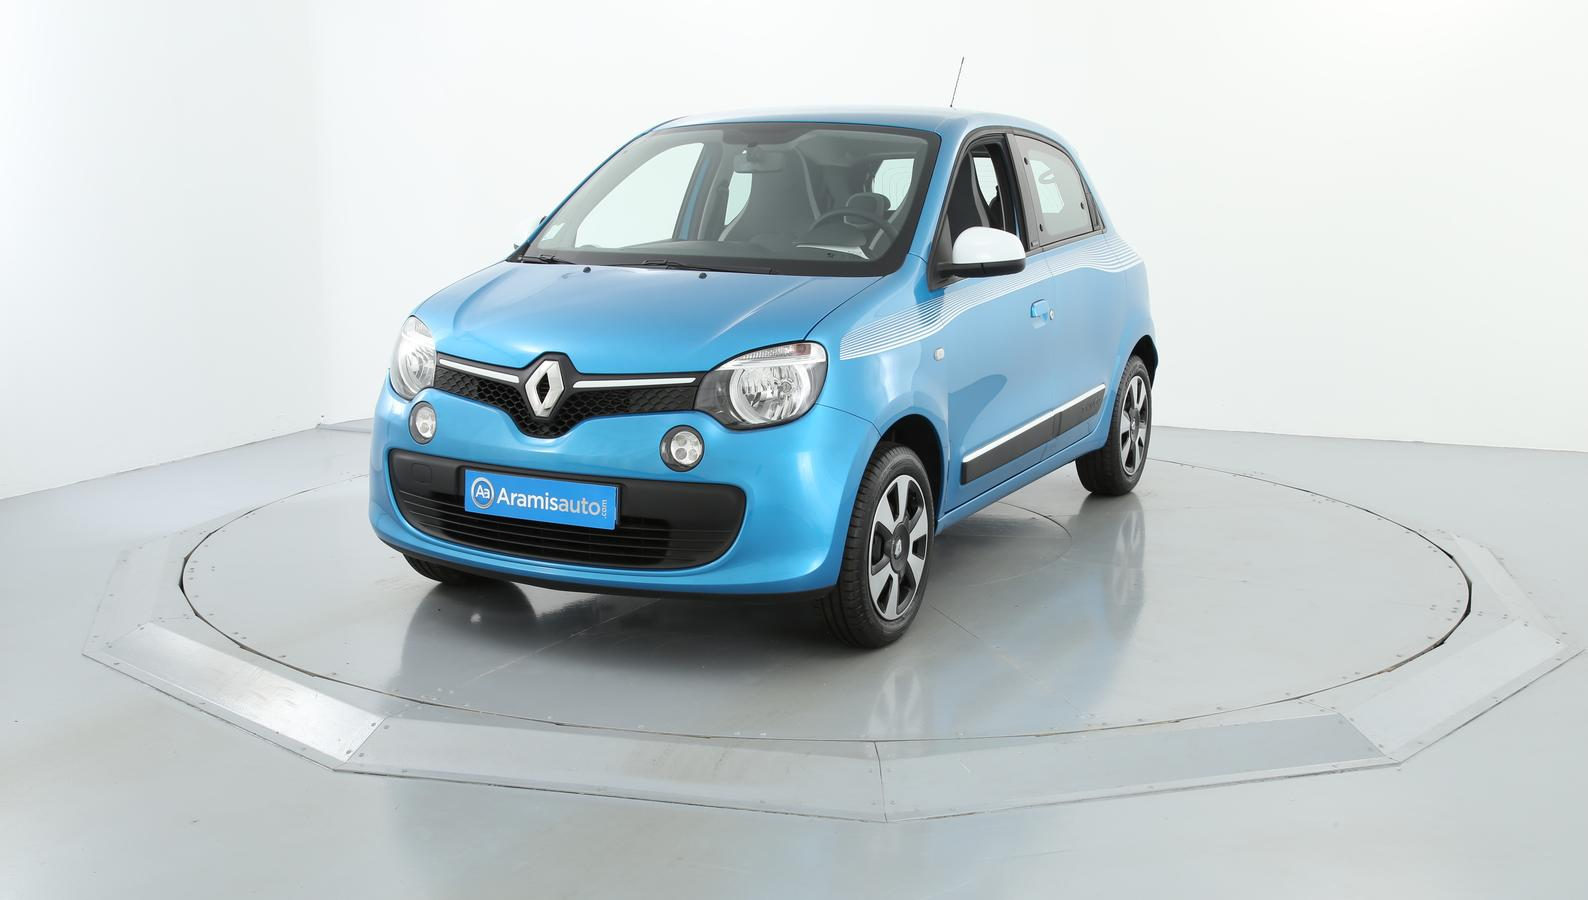 renault twingo 3 citadine 5 portes essence 0 9 tce. Black Bedroom Furniture Sets. Home Design Ideas